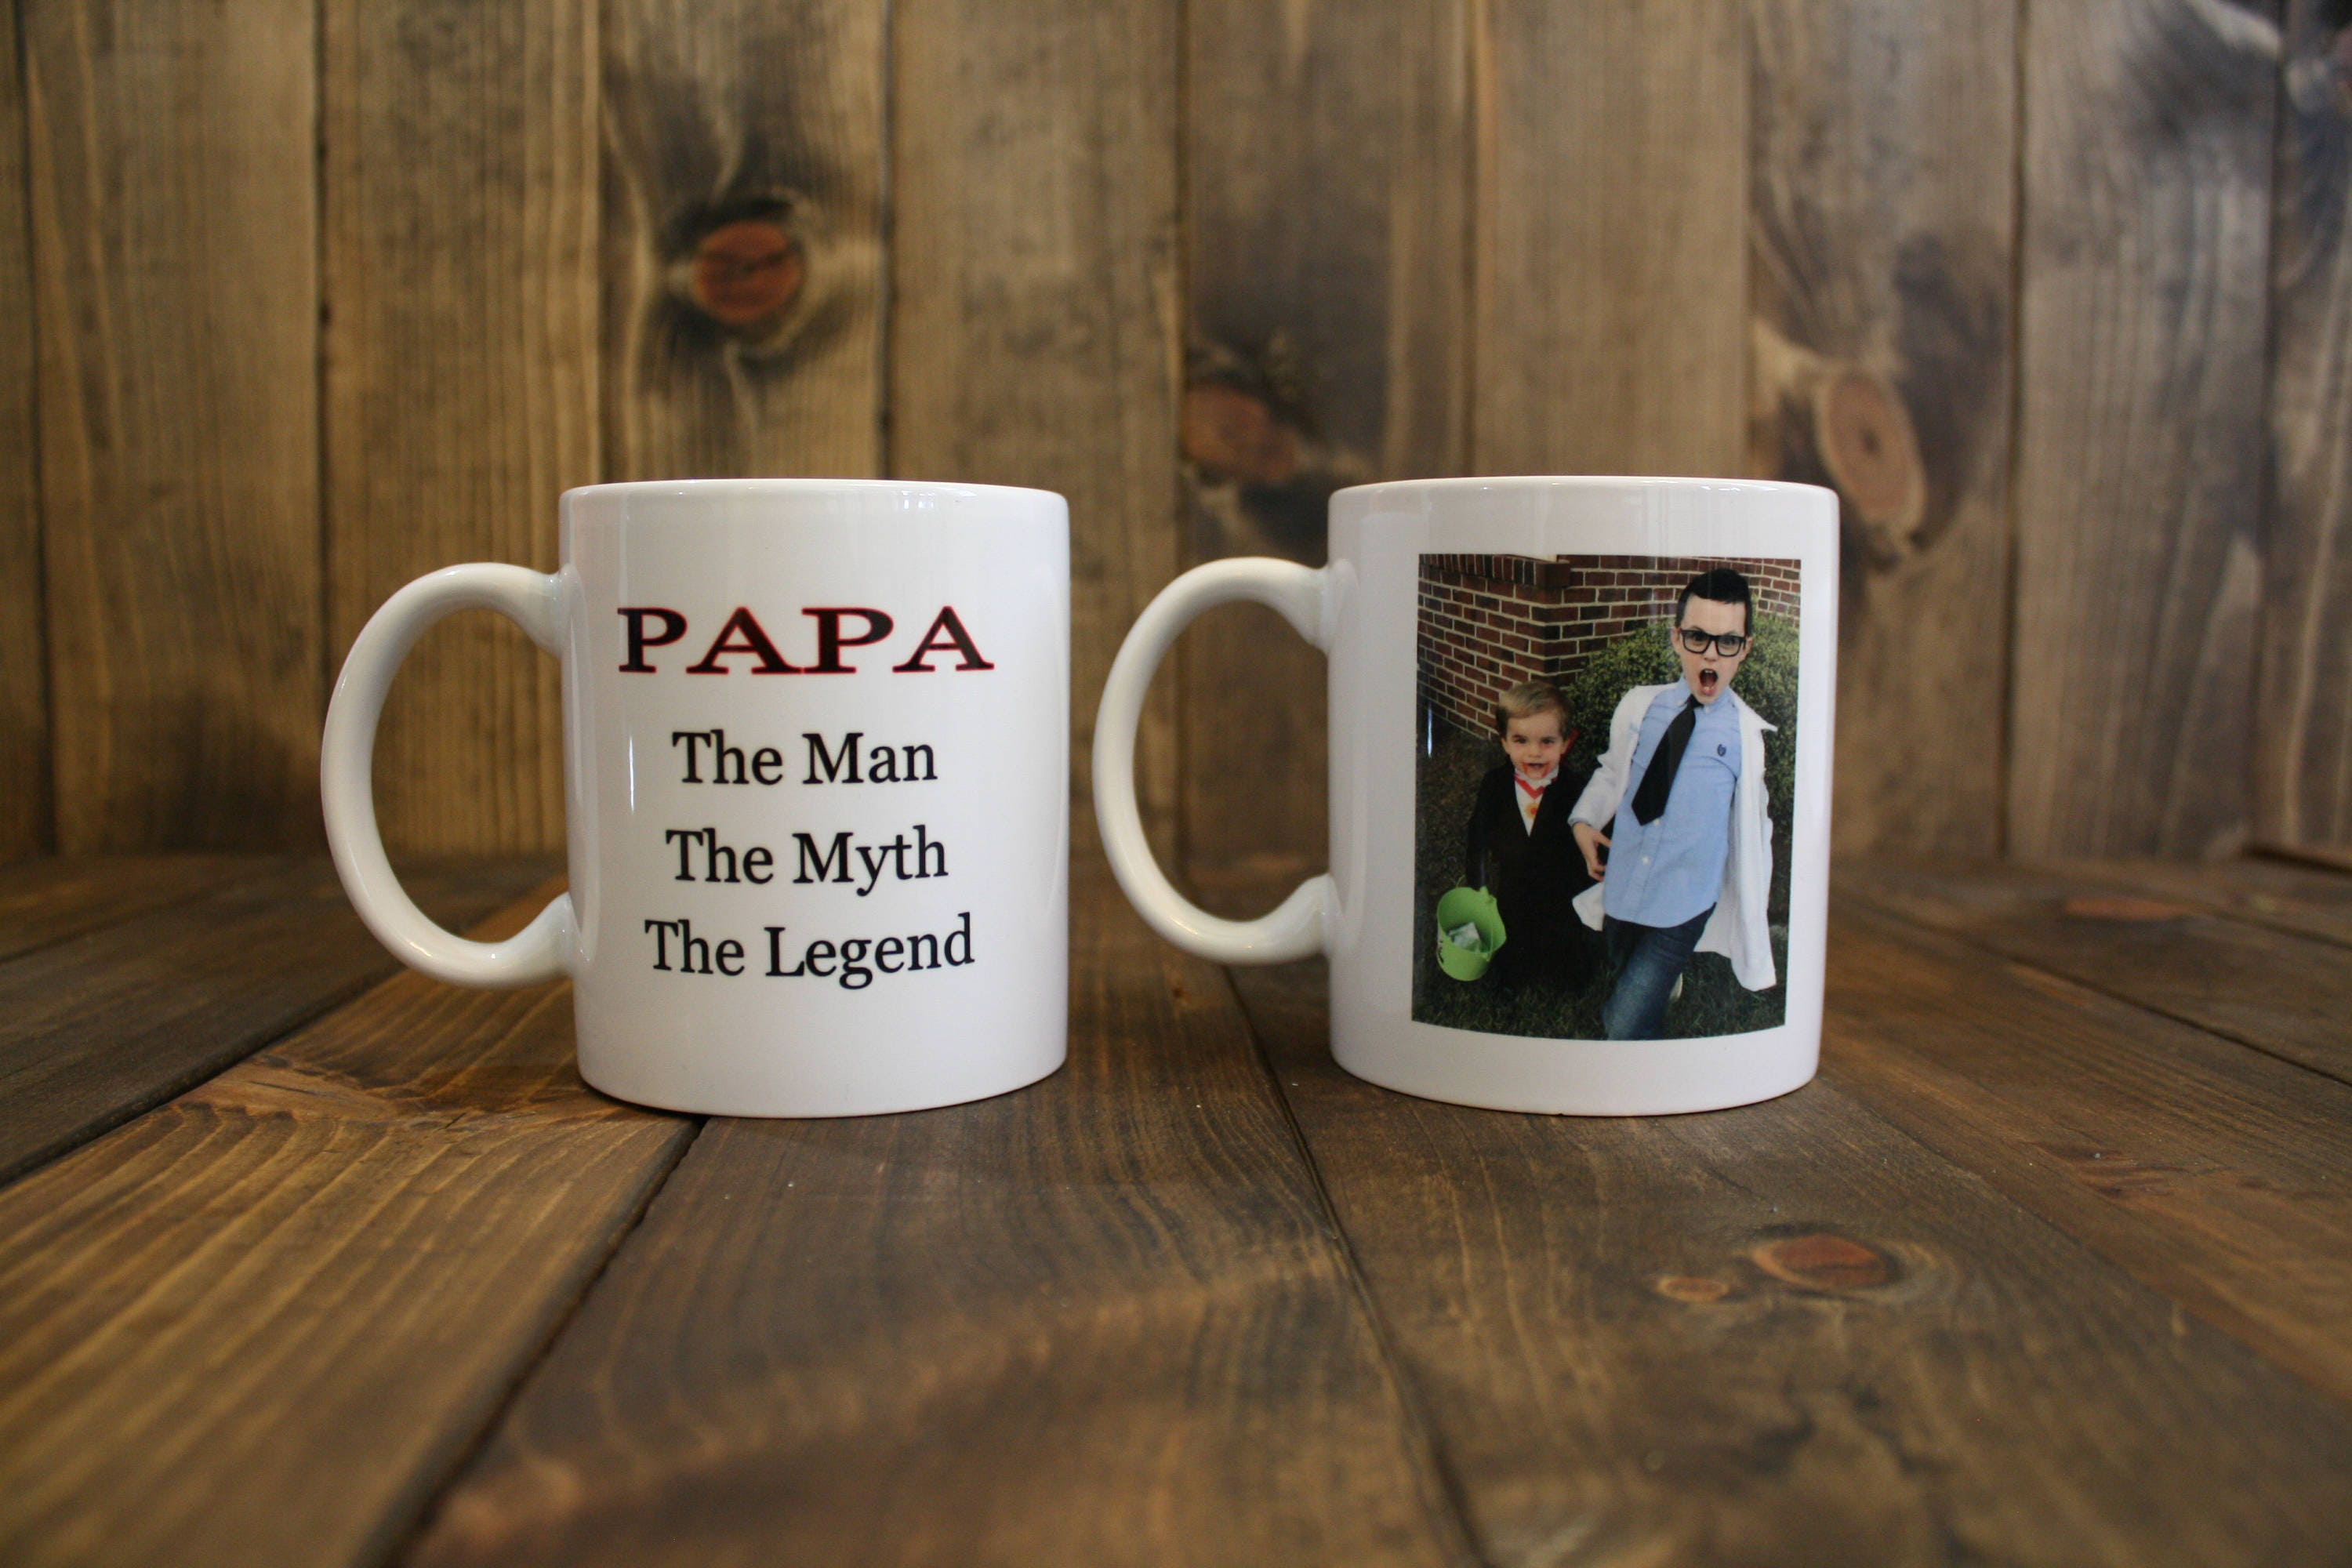 d059c213aabc Papa The Man The Myth The Legend Coffee Mug - Father s Day Coffee Cup -  Papa Cup - Grandfather Mug - Personalized Mug - Picture Cup